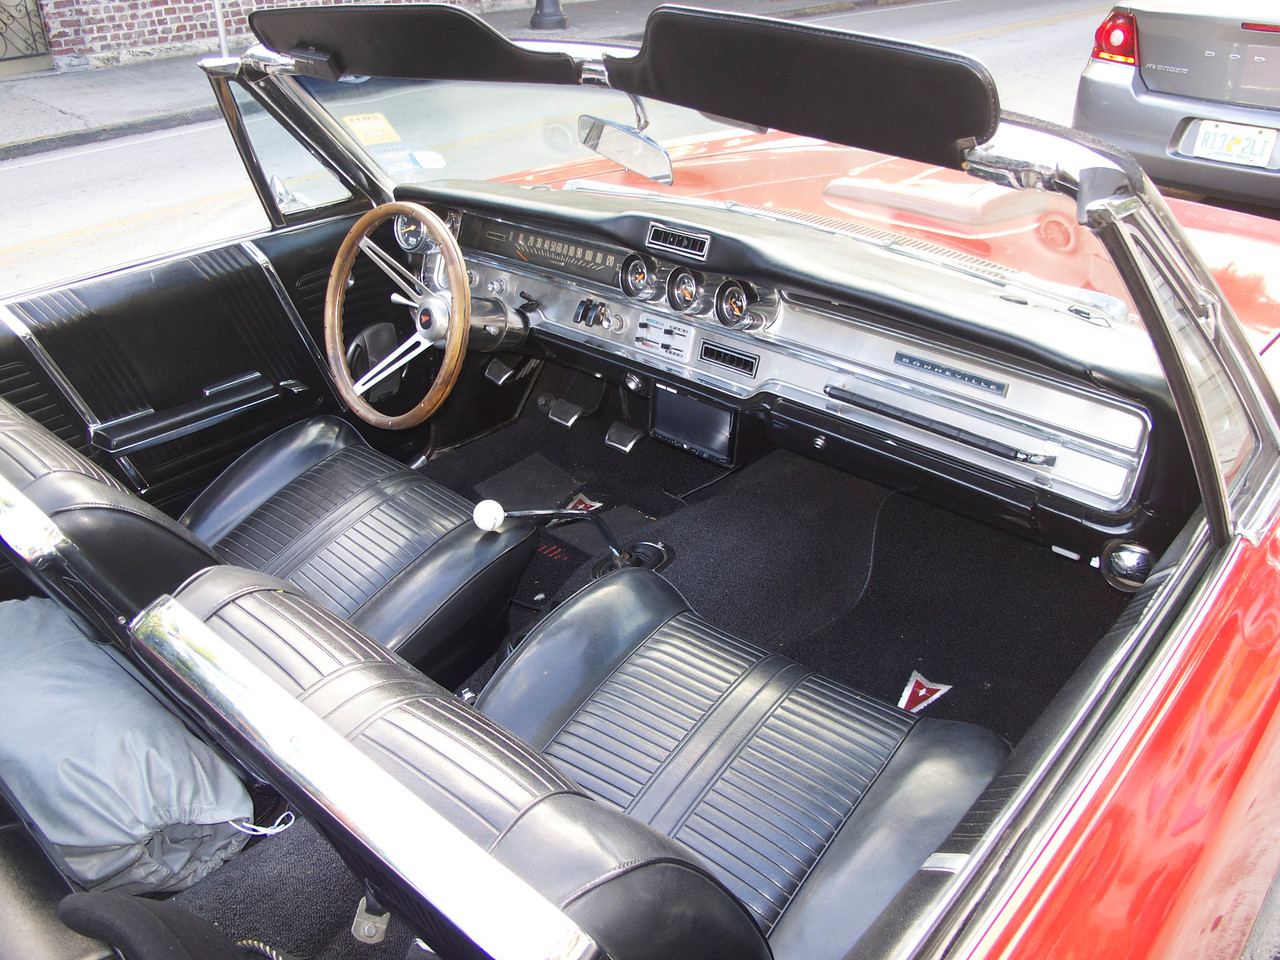 The interior of the Bonneville 421. View in the original size and scroll around. You'll see a microphone where the steering column hits the dash, you can read the instrumentation, see the foot switch for the light dimmers; there's a little disk on the passenger side of the dash with a wire coming out -- that's the antenna for the GPS you see mounted under the dash in front of the Hurst shifter.